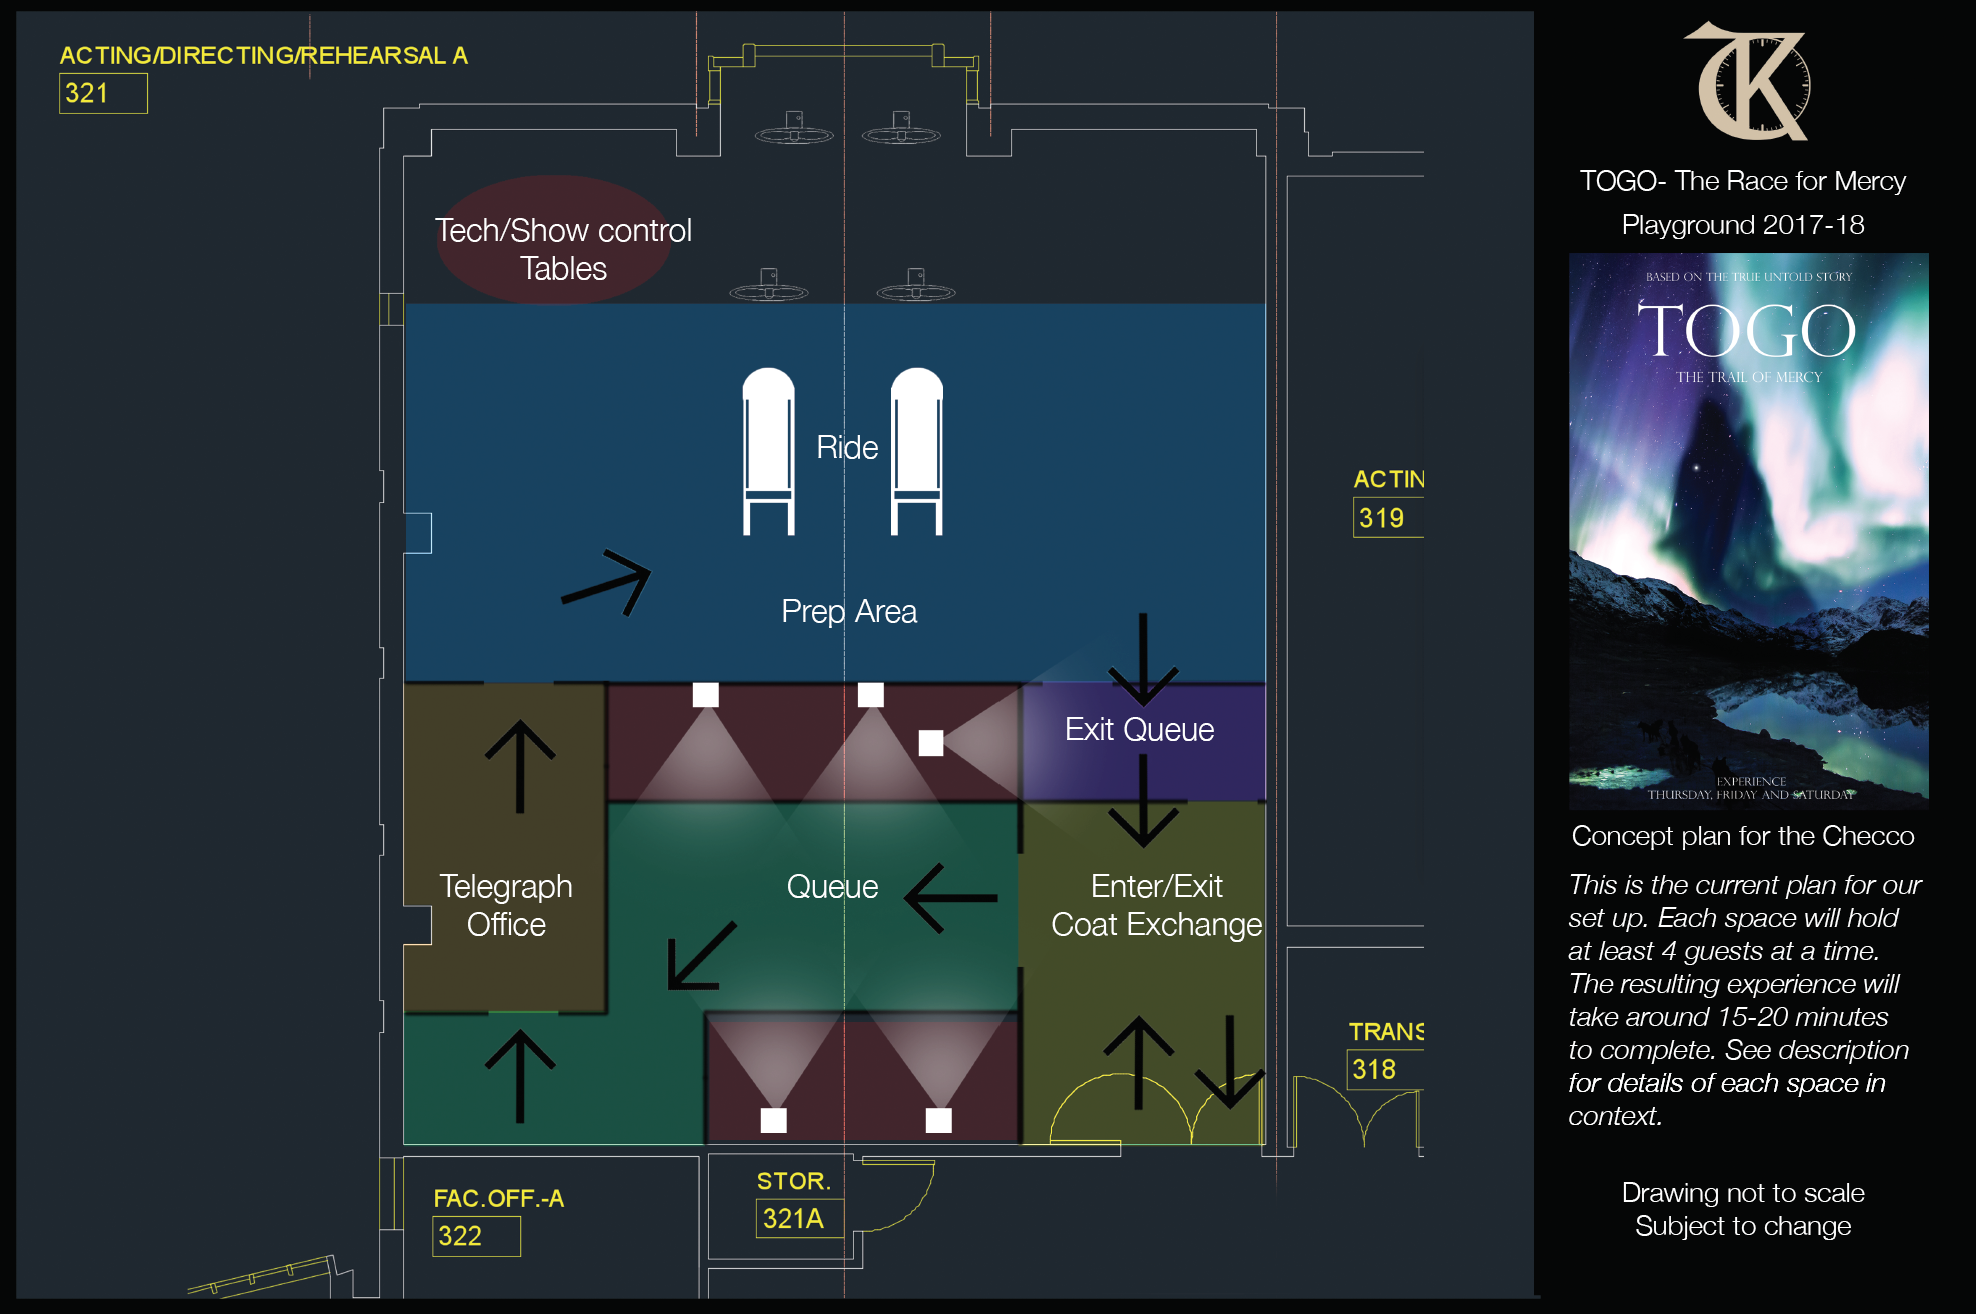 Basic Concept Layout of Experience